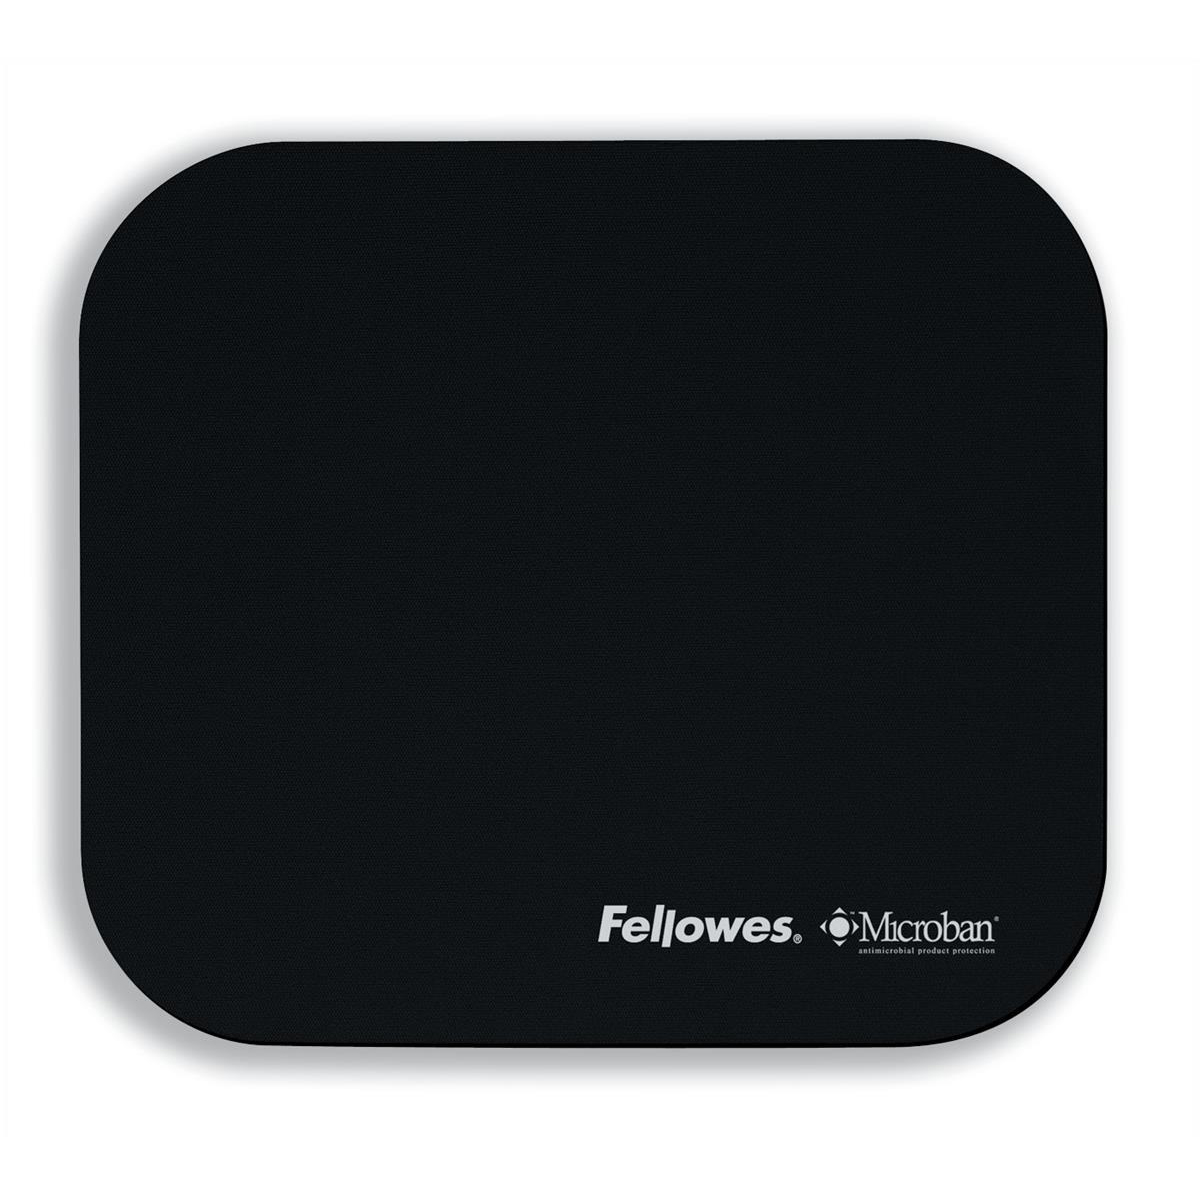 Mouse Mats Fellowes Microban Mousepad Antibacterial with Non-slip Base Black Ref 5933907